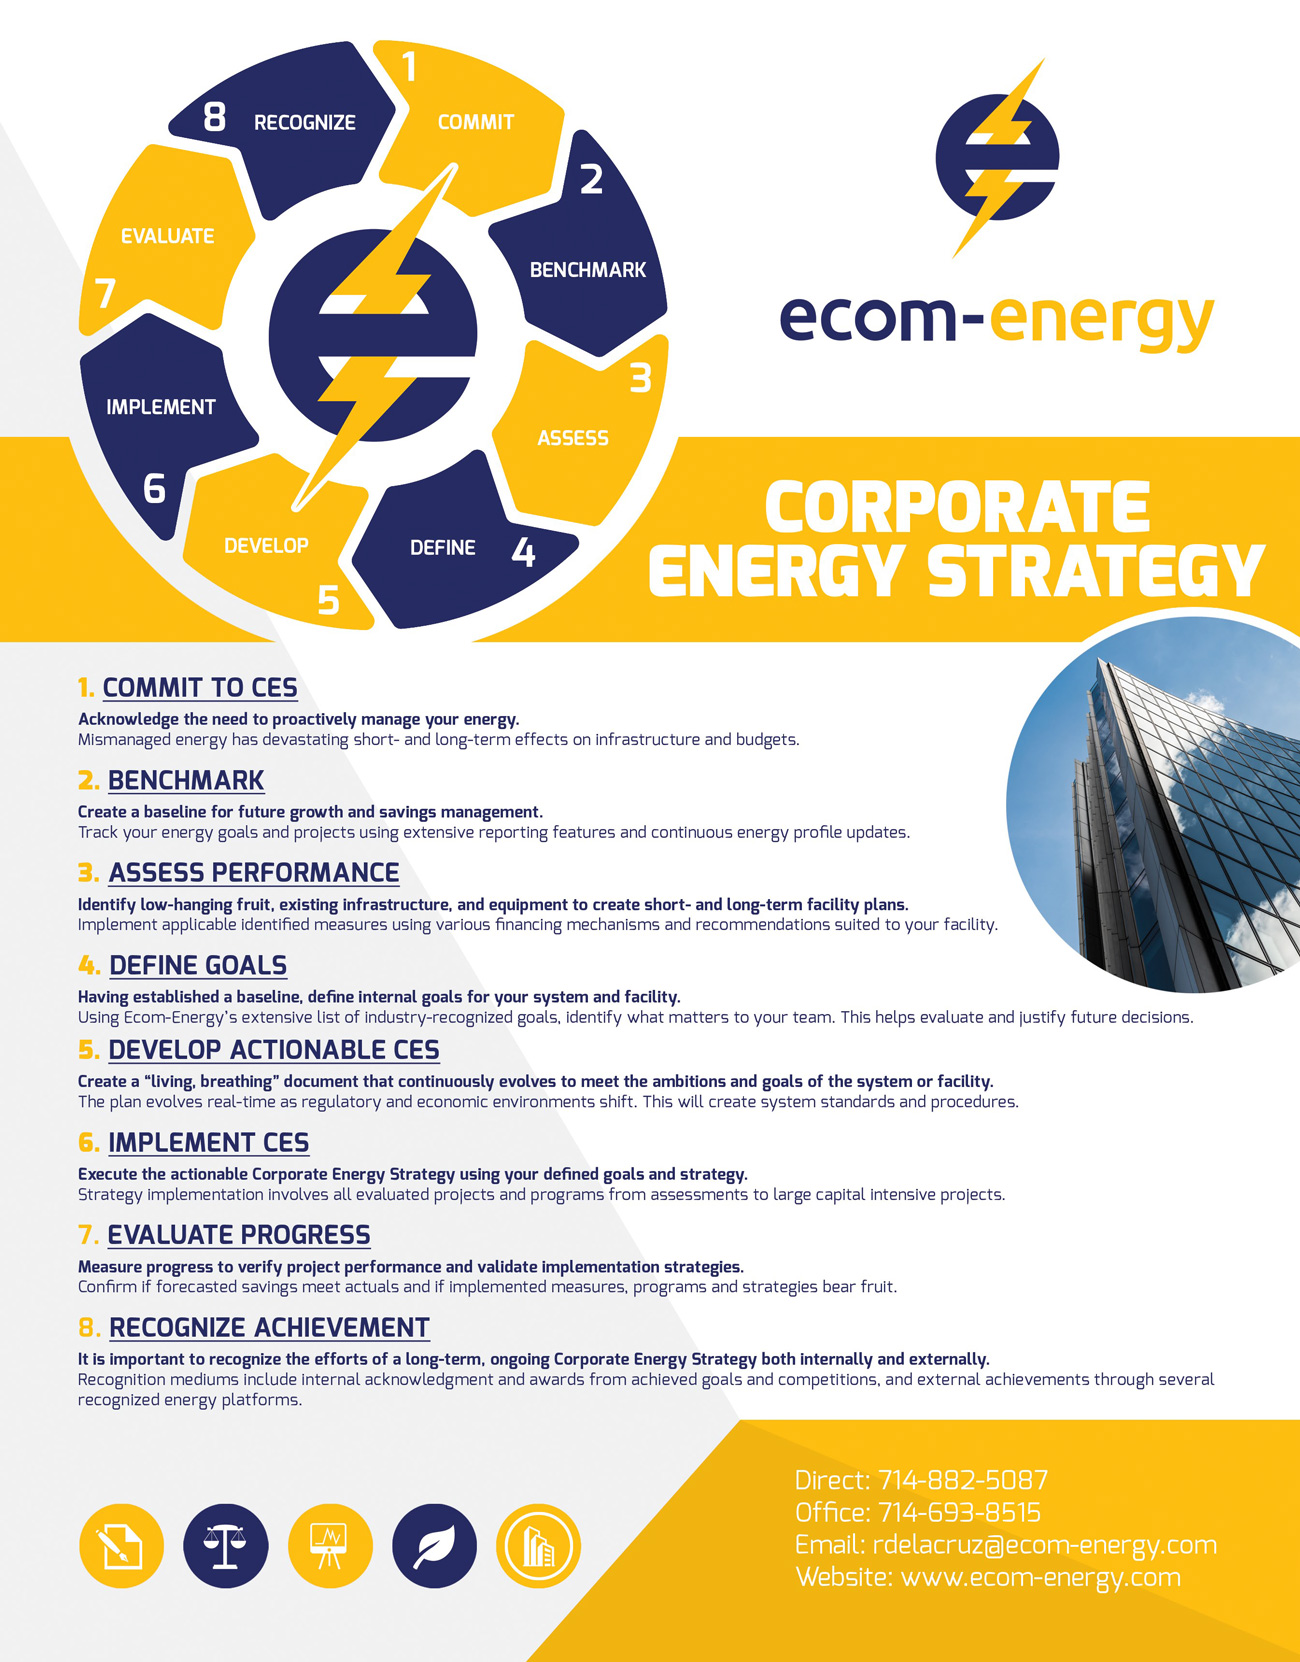 Ecom-Energy's Corporate Energy Strategy Flyer